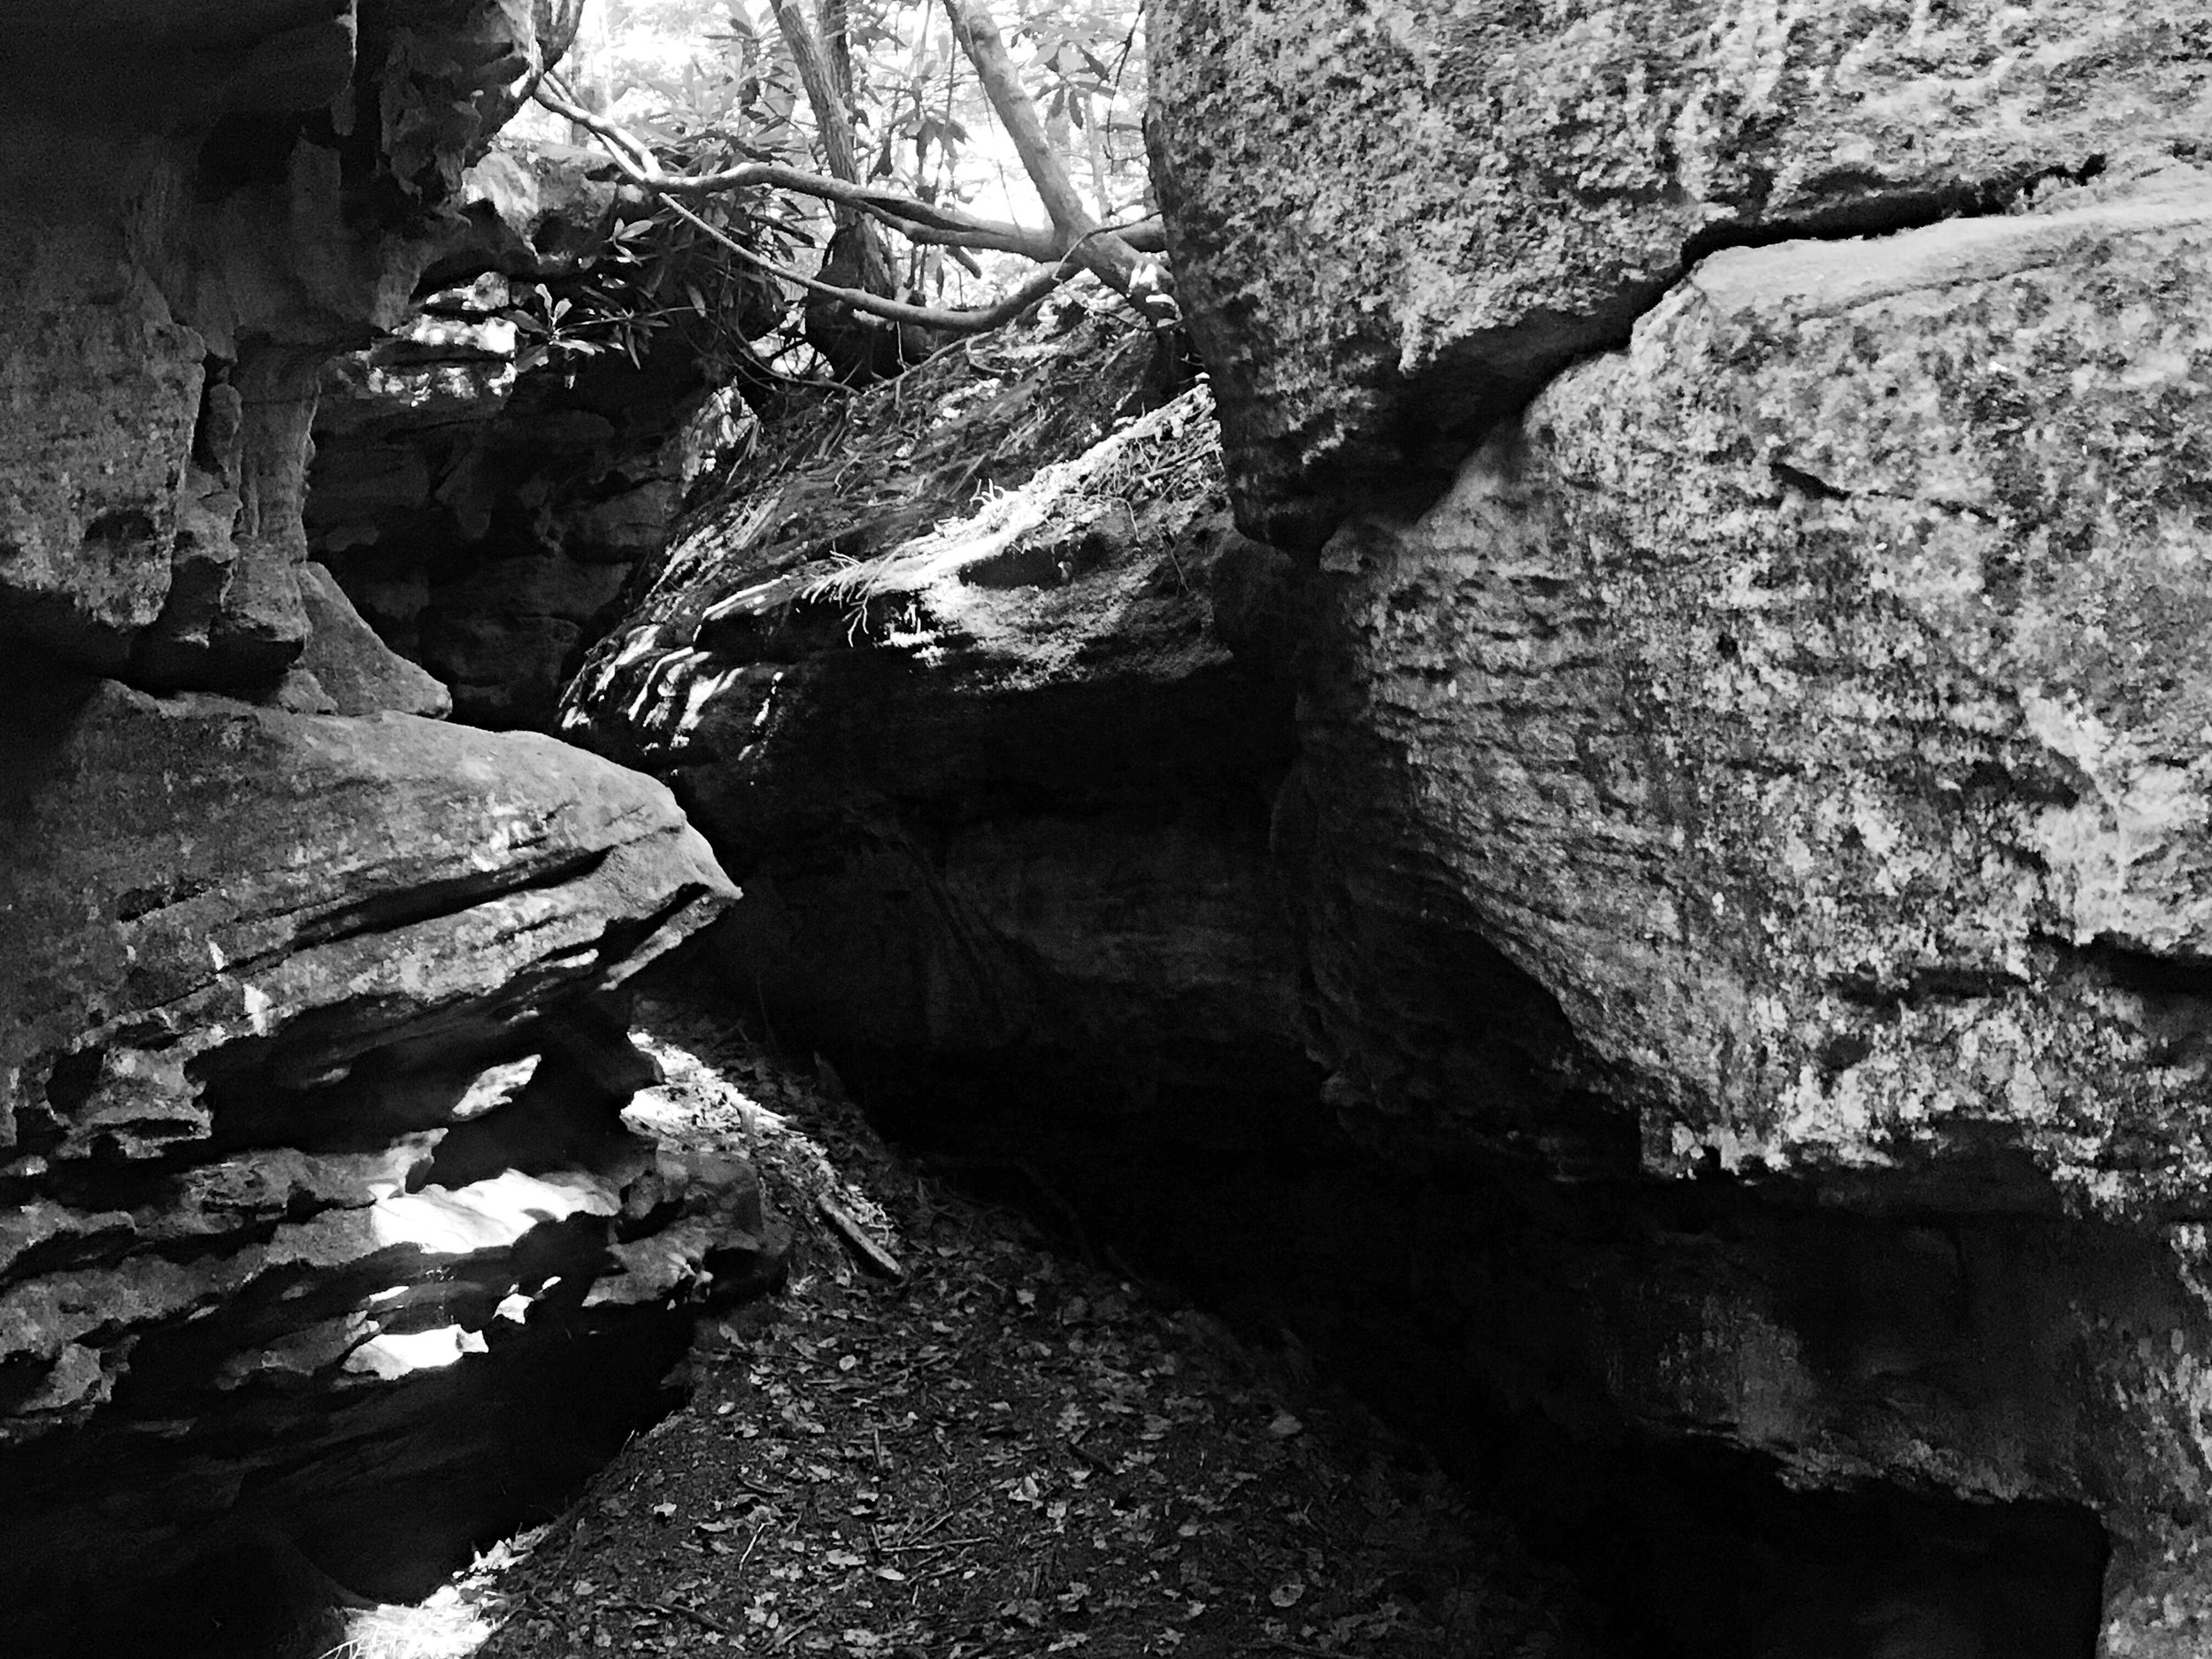 obed-wild-and-scenic-river-boulder-field-tennessee_0255.JPG